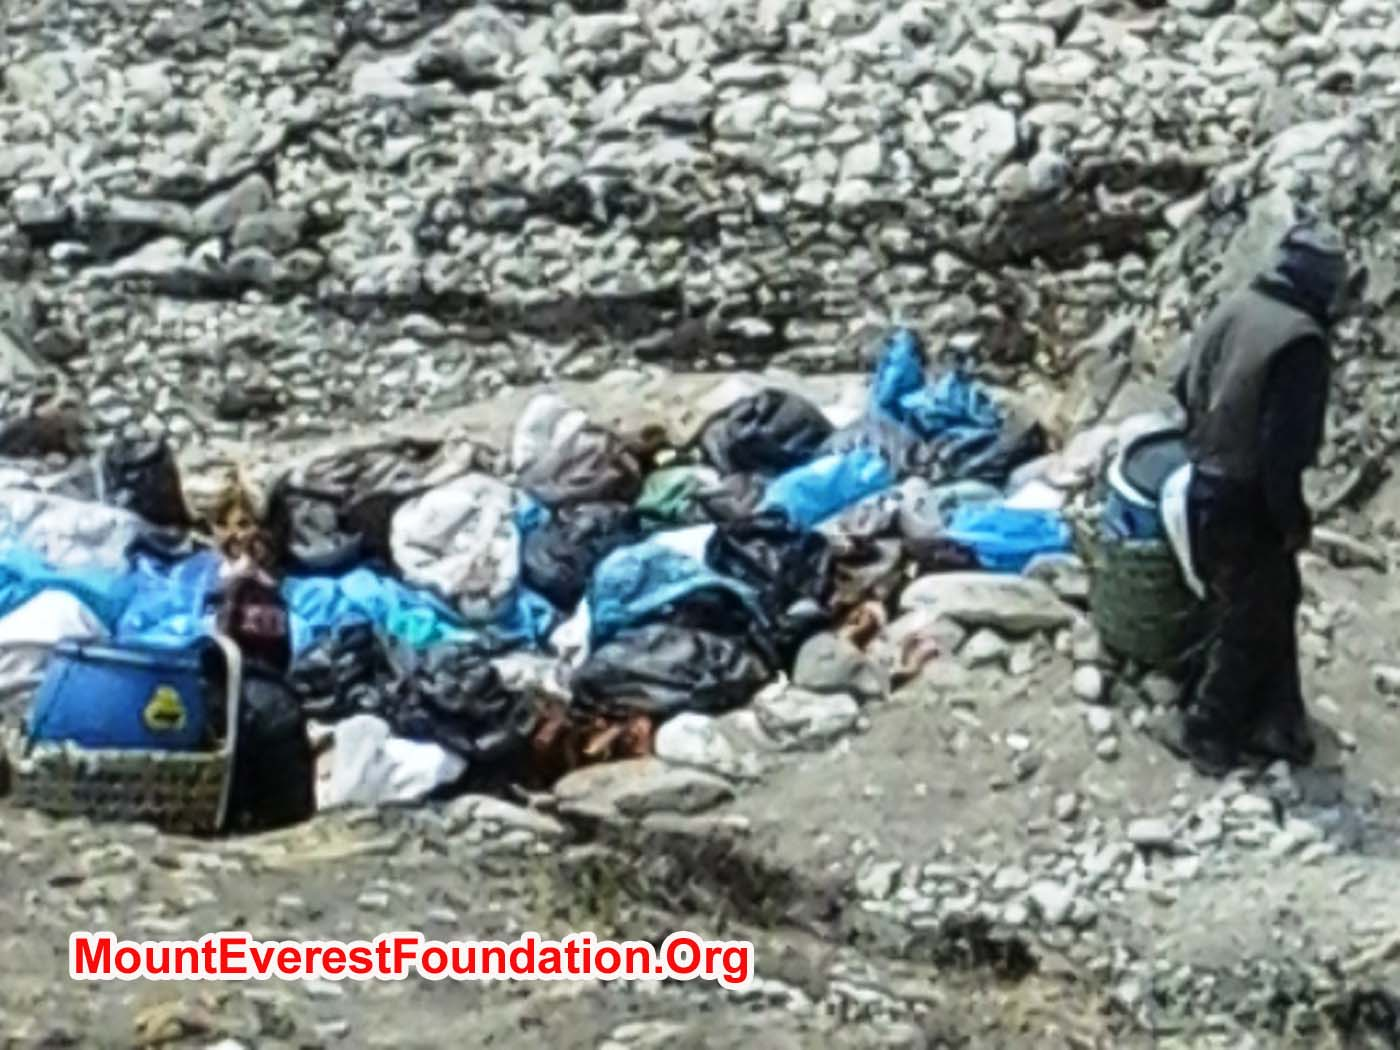 Porters preparing to empty their human waste drums from Everest basecamp into the pits at Kyakpa Yul